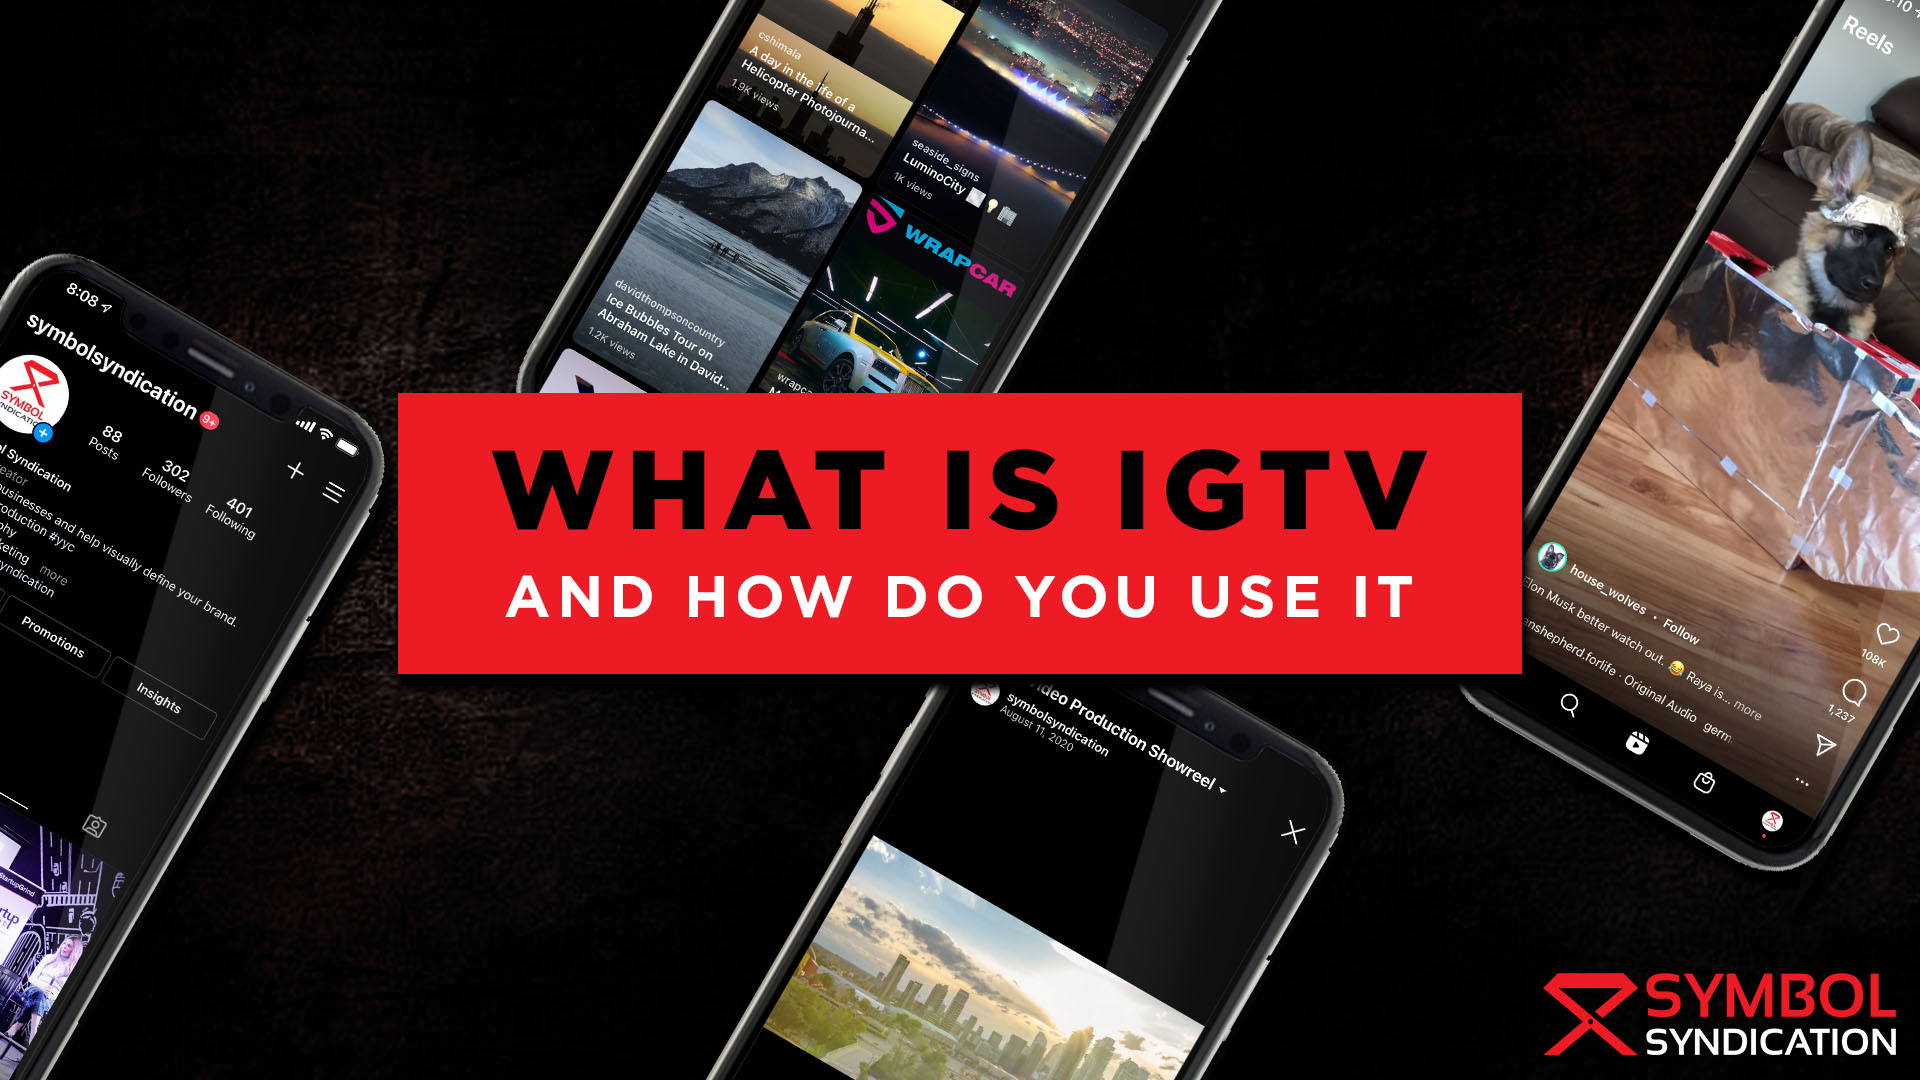 What is IGTV and how does it work